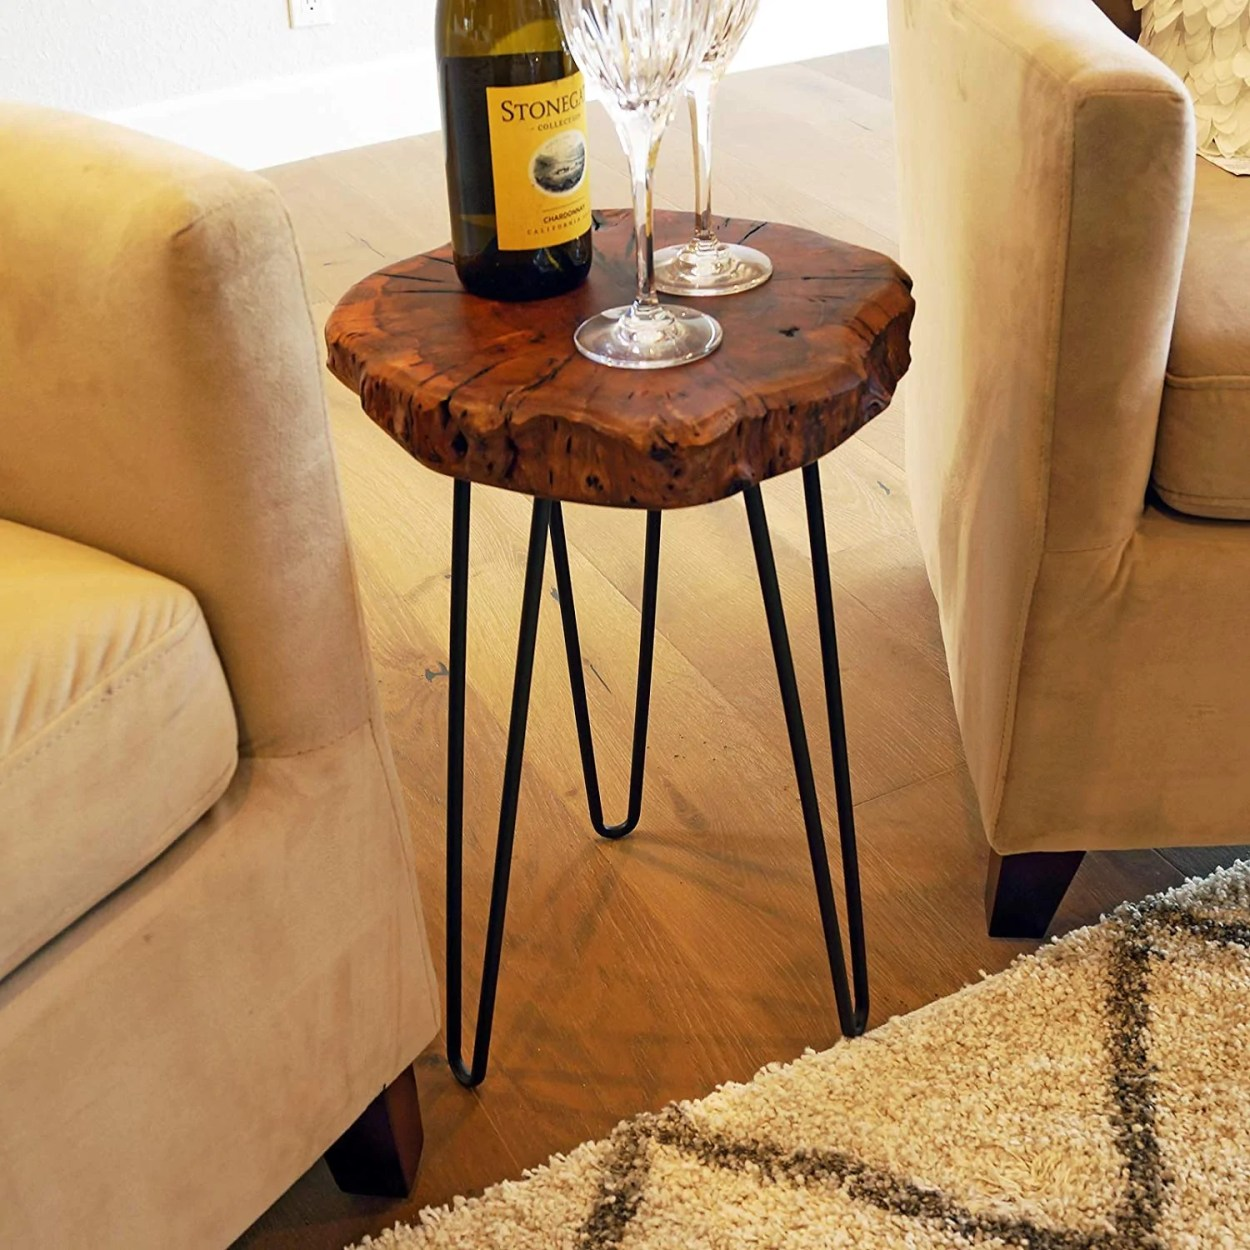 Image result for stump table